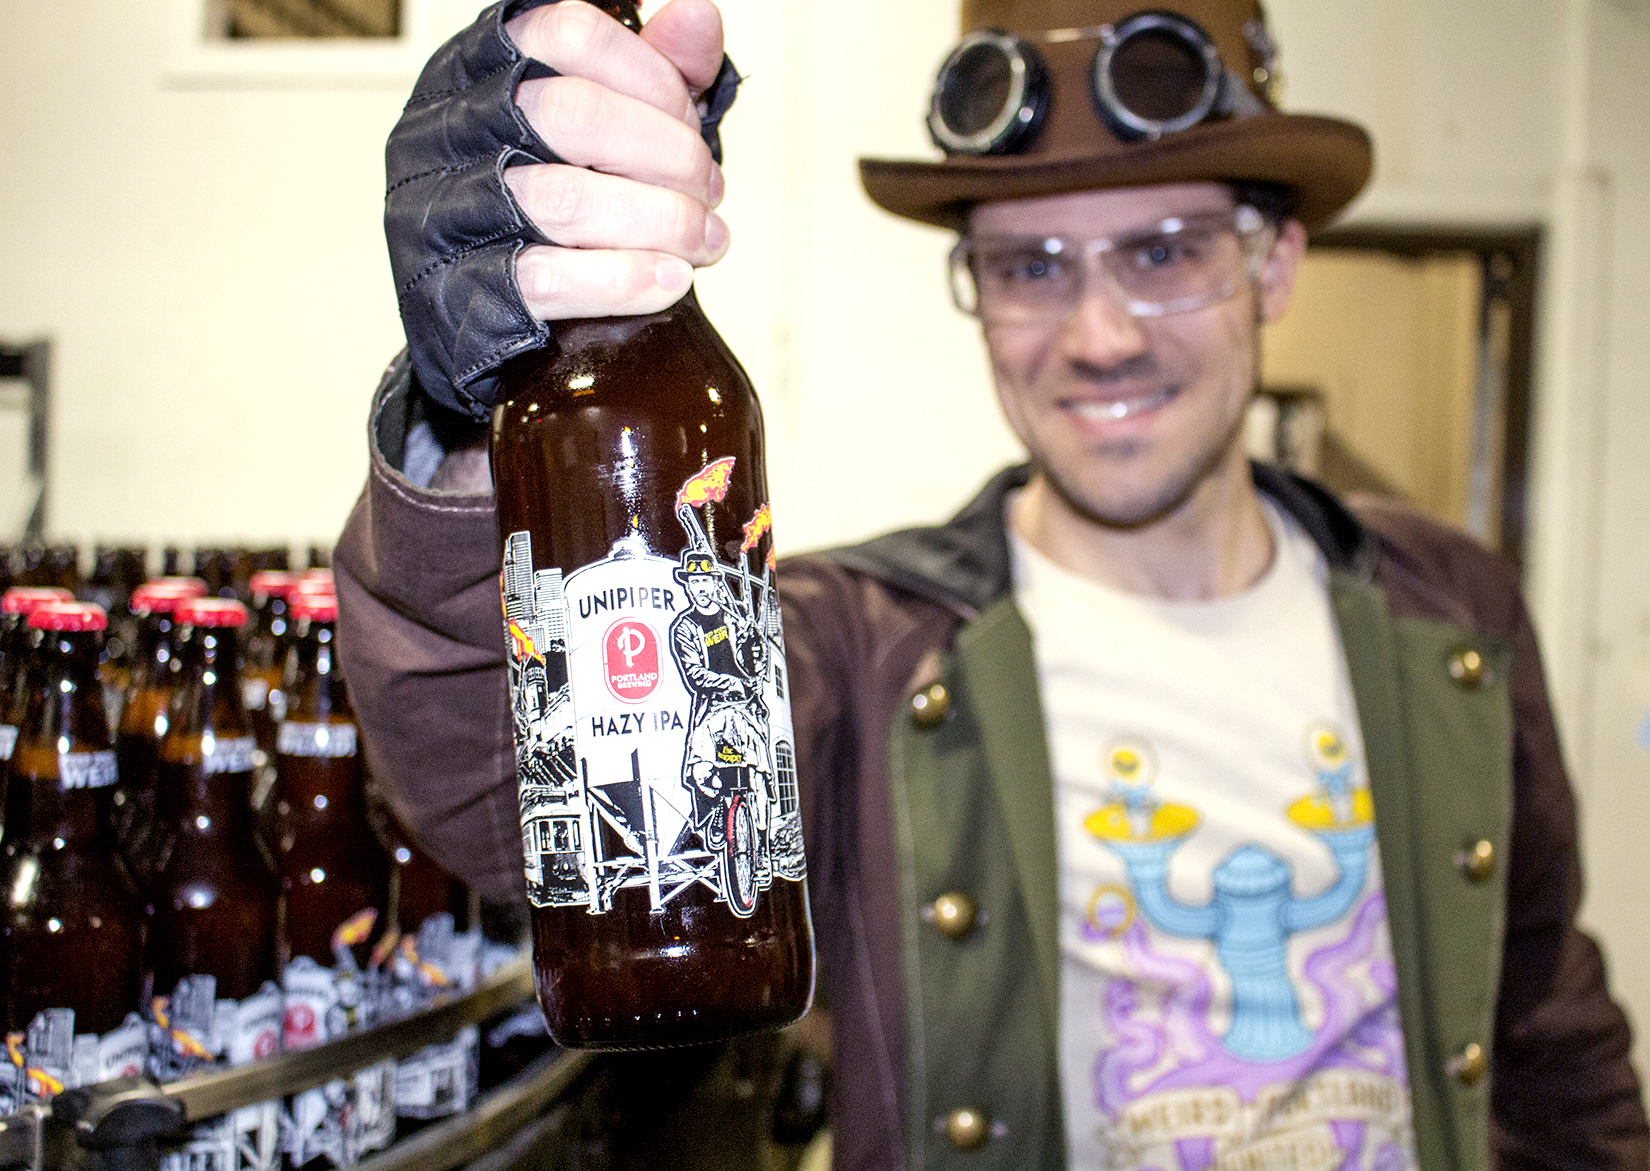 The Unipiper beer close up. (image courtesy of Portland Brewing)